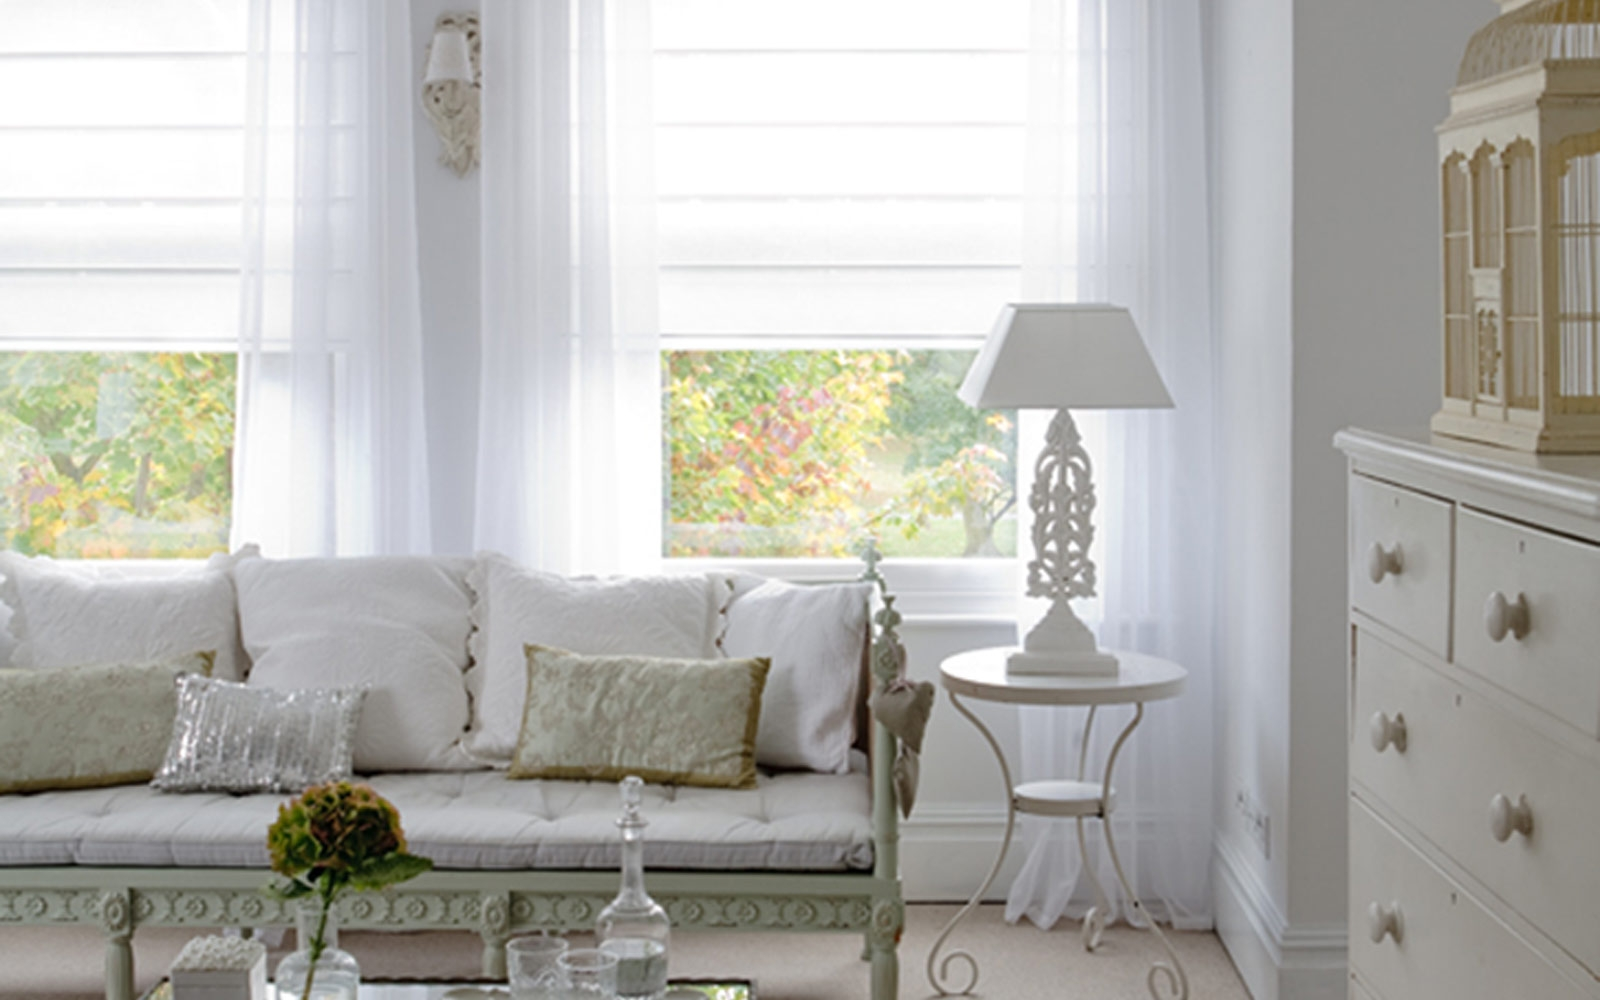 Voile Surrey Blinds Shutters Intended For Voile Roman Blinds (View 3 of 15)